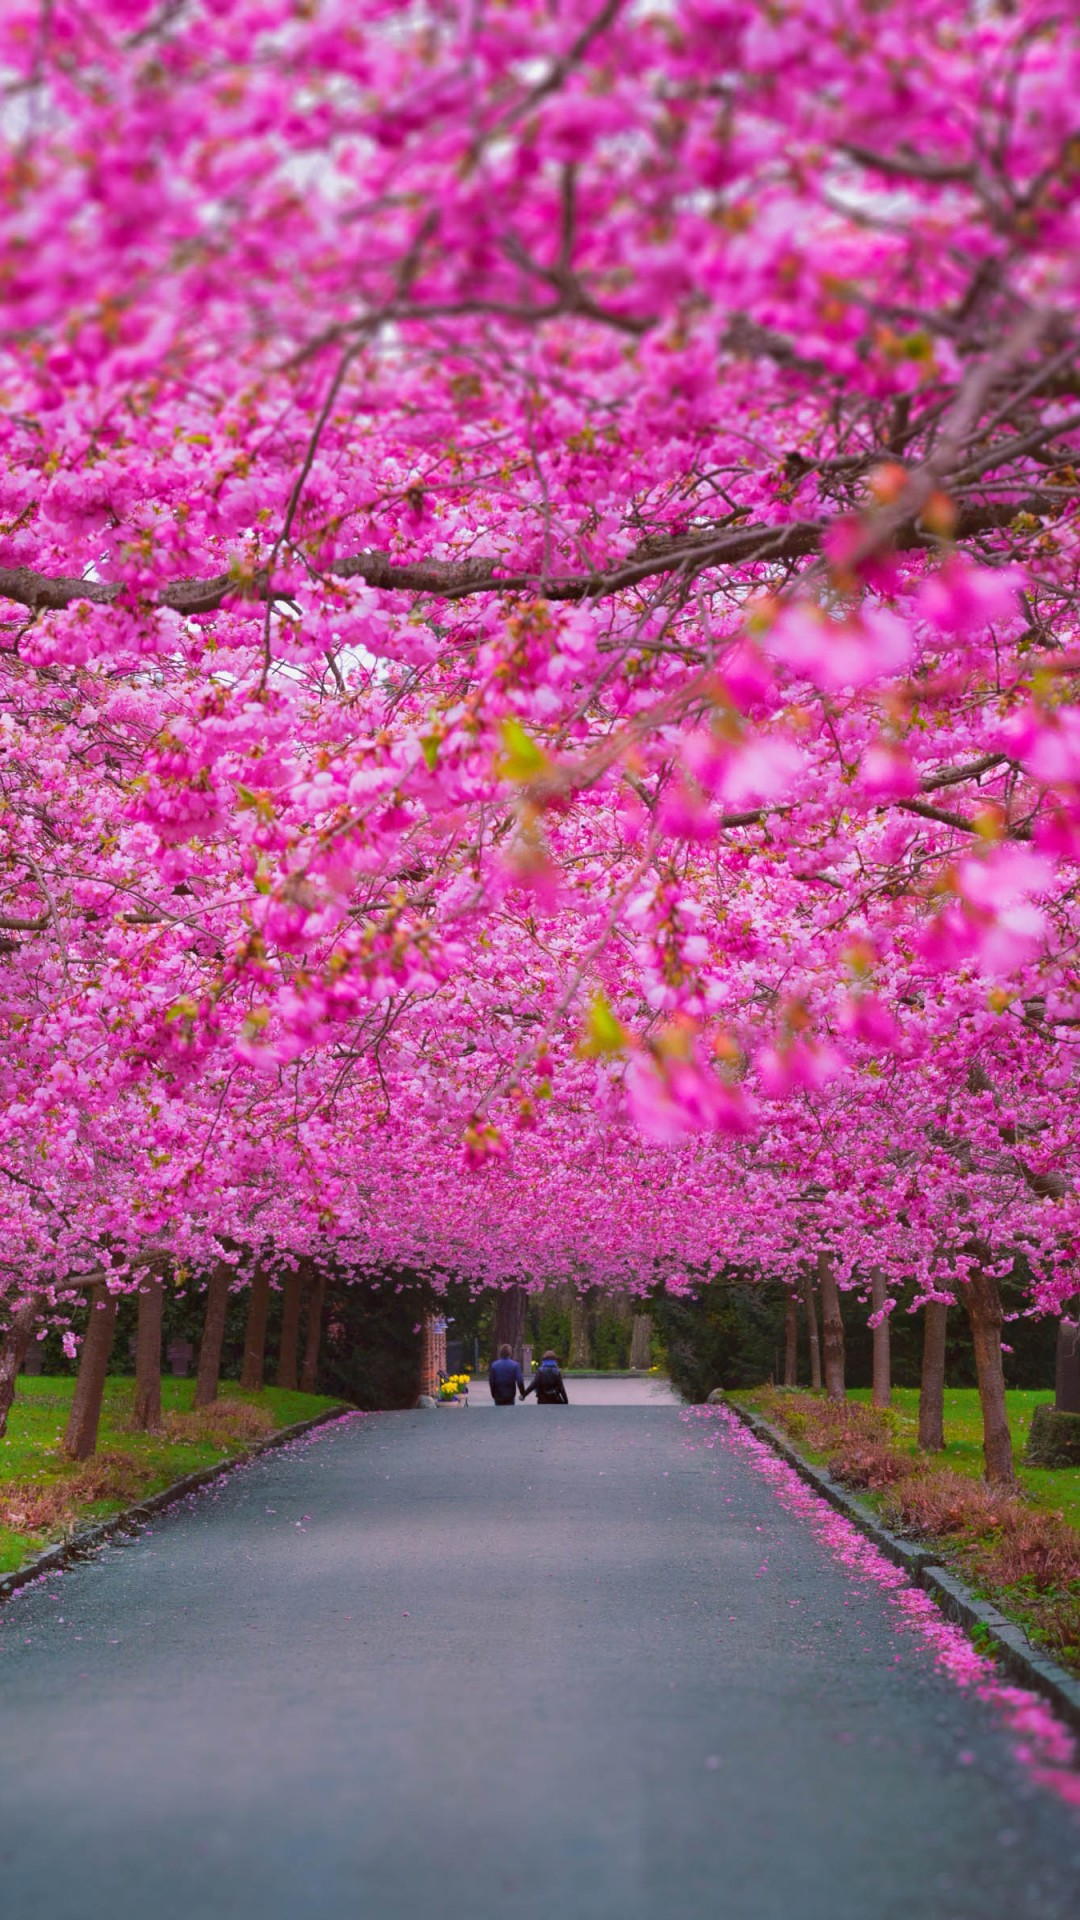 1920x1080 Hd Wallpapers Girls Wallpaper Trees 4k 5k Wallpaper Sakura Spring Nature